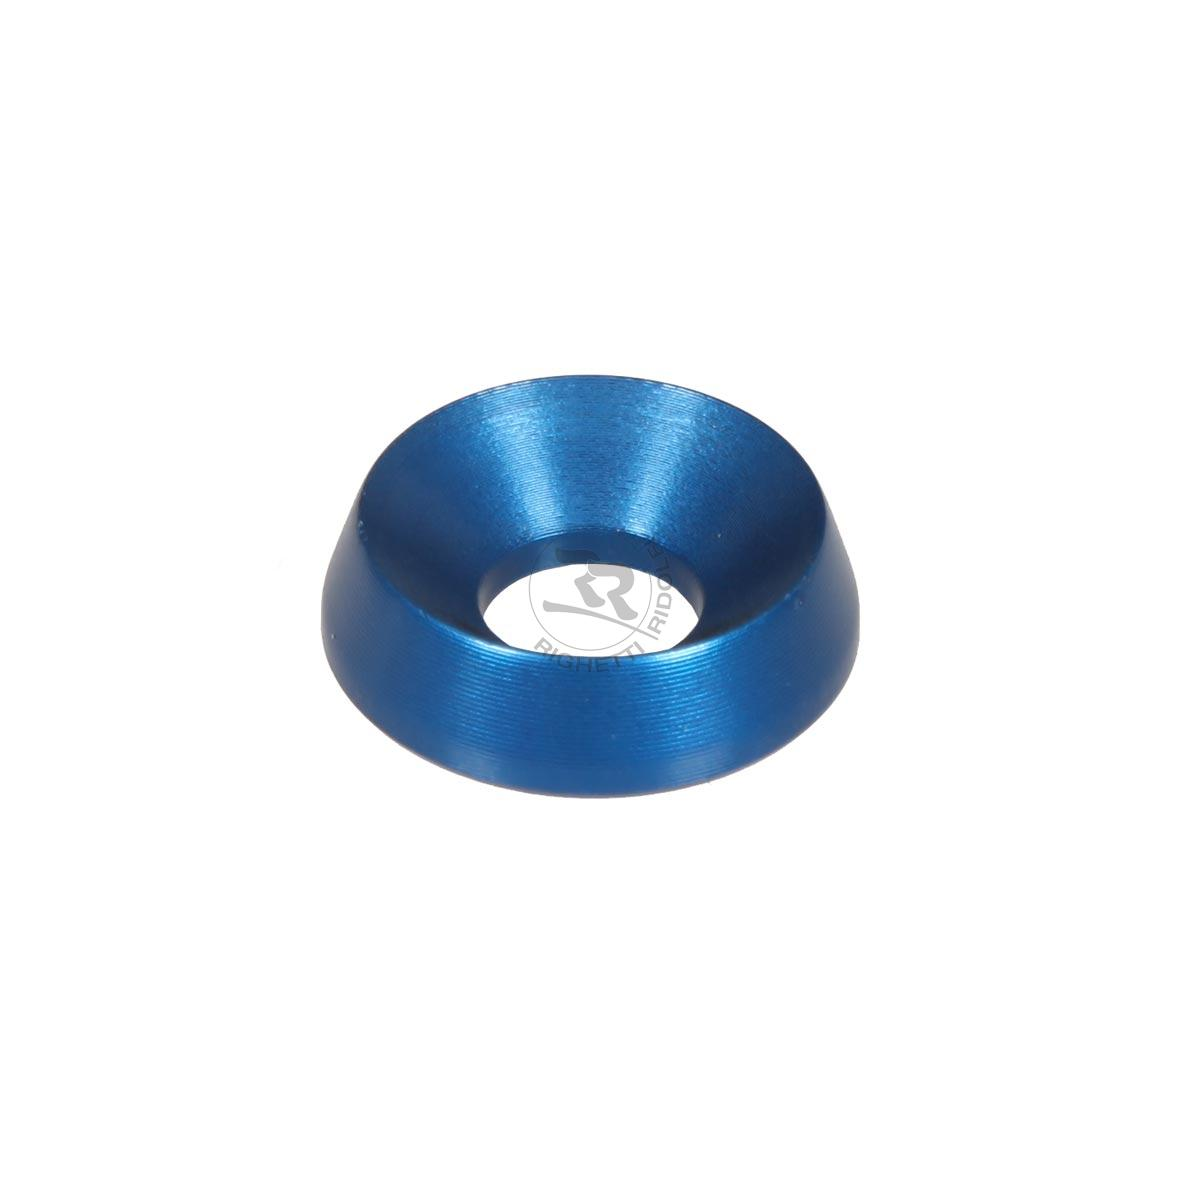 ALUMINIUM COUNTERSUNK WASHER 19 x 8mm, BLUE ANODIZED